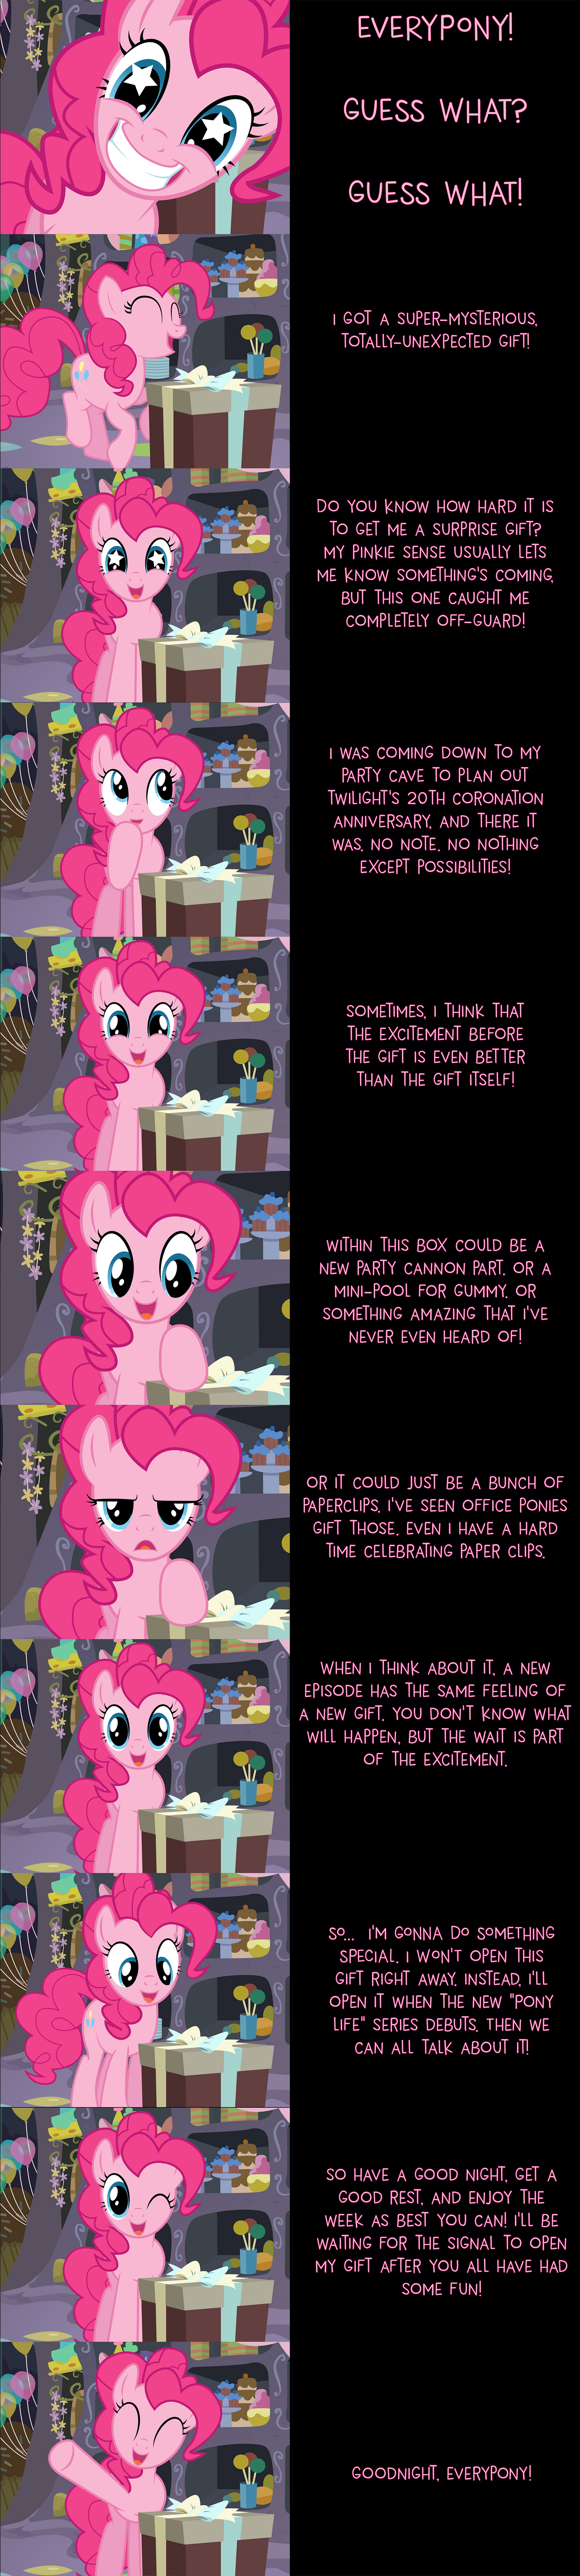 Pinkie Pie Says Goodnight: Schrodinger's Gift